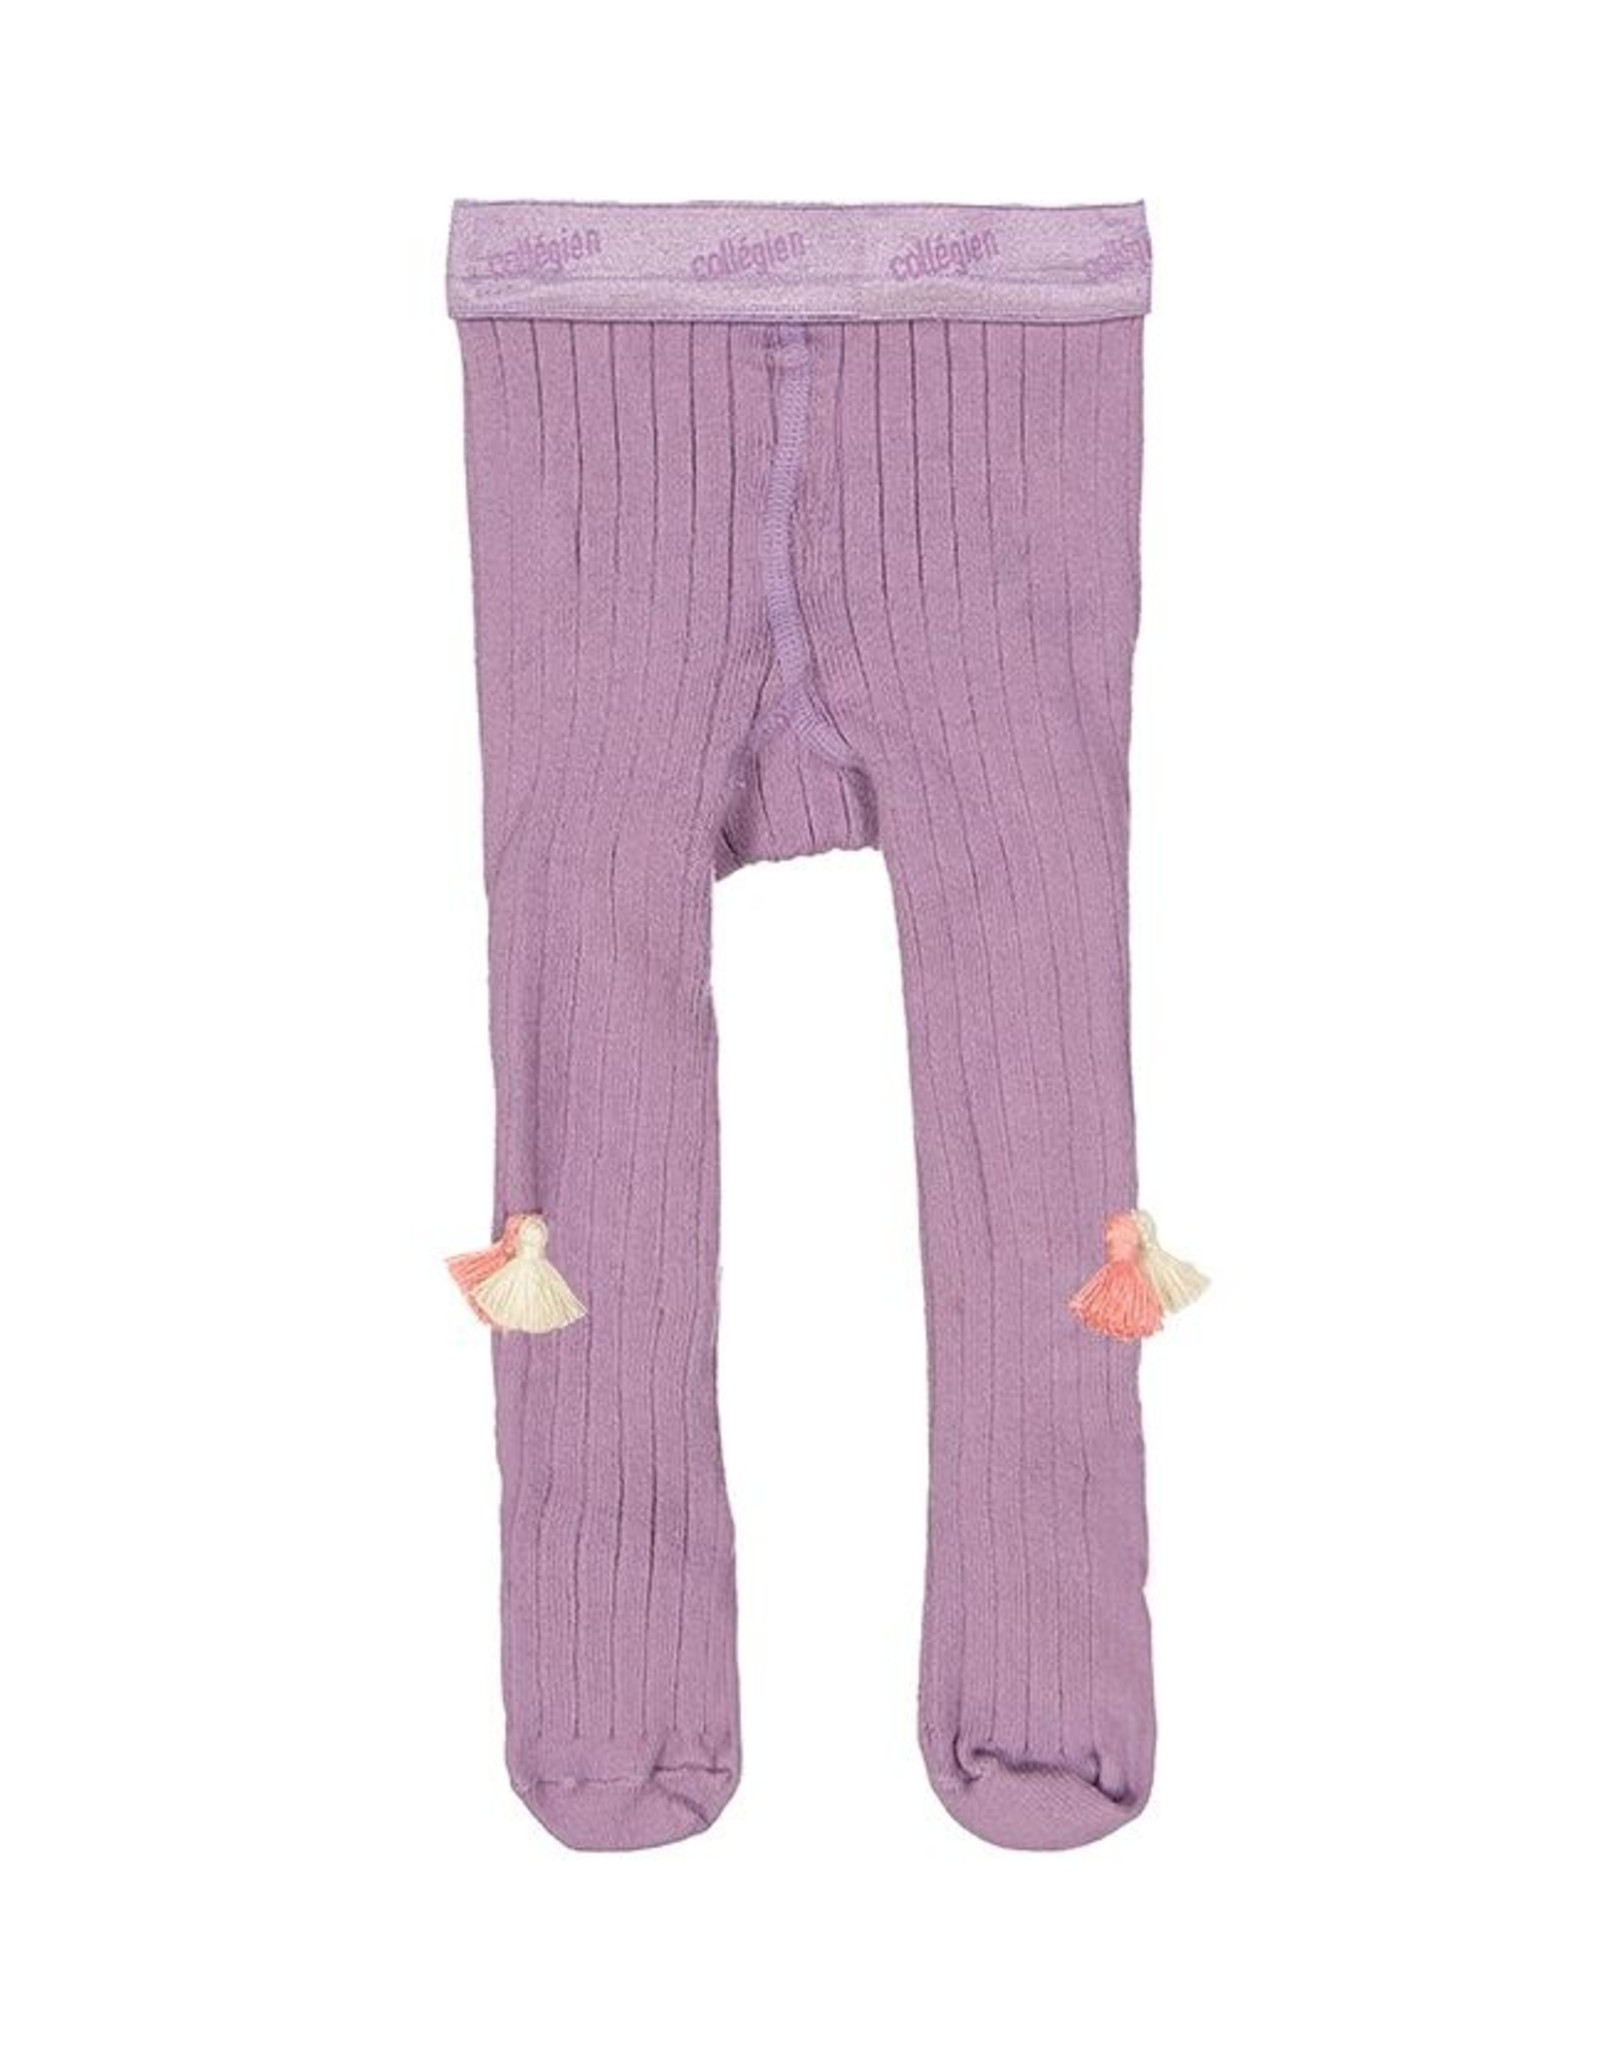 Everbloom tassel tights- lavender